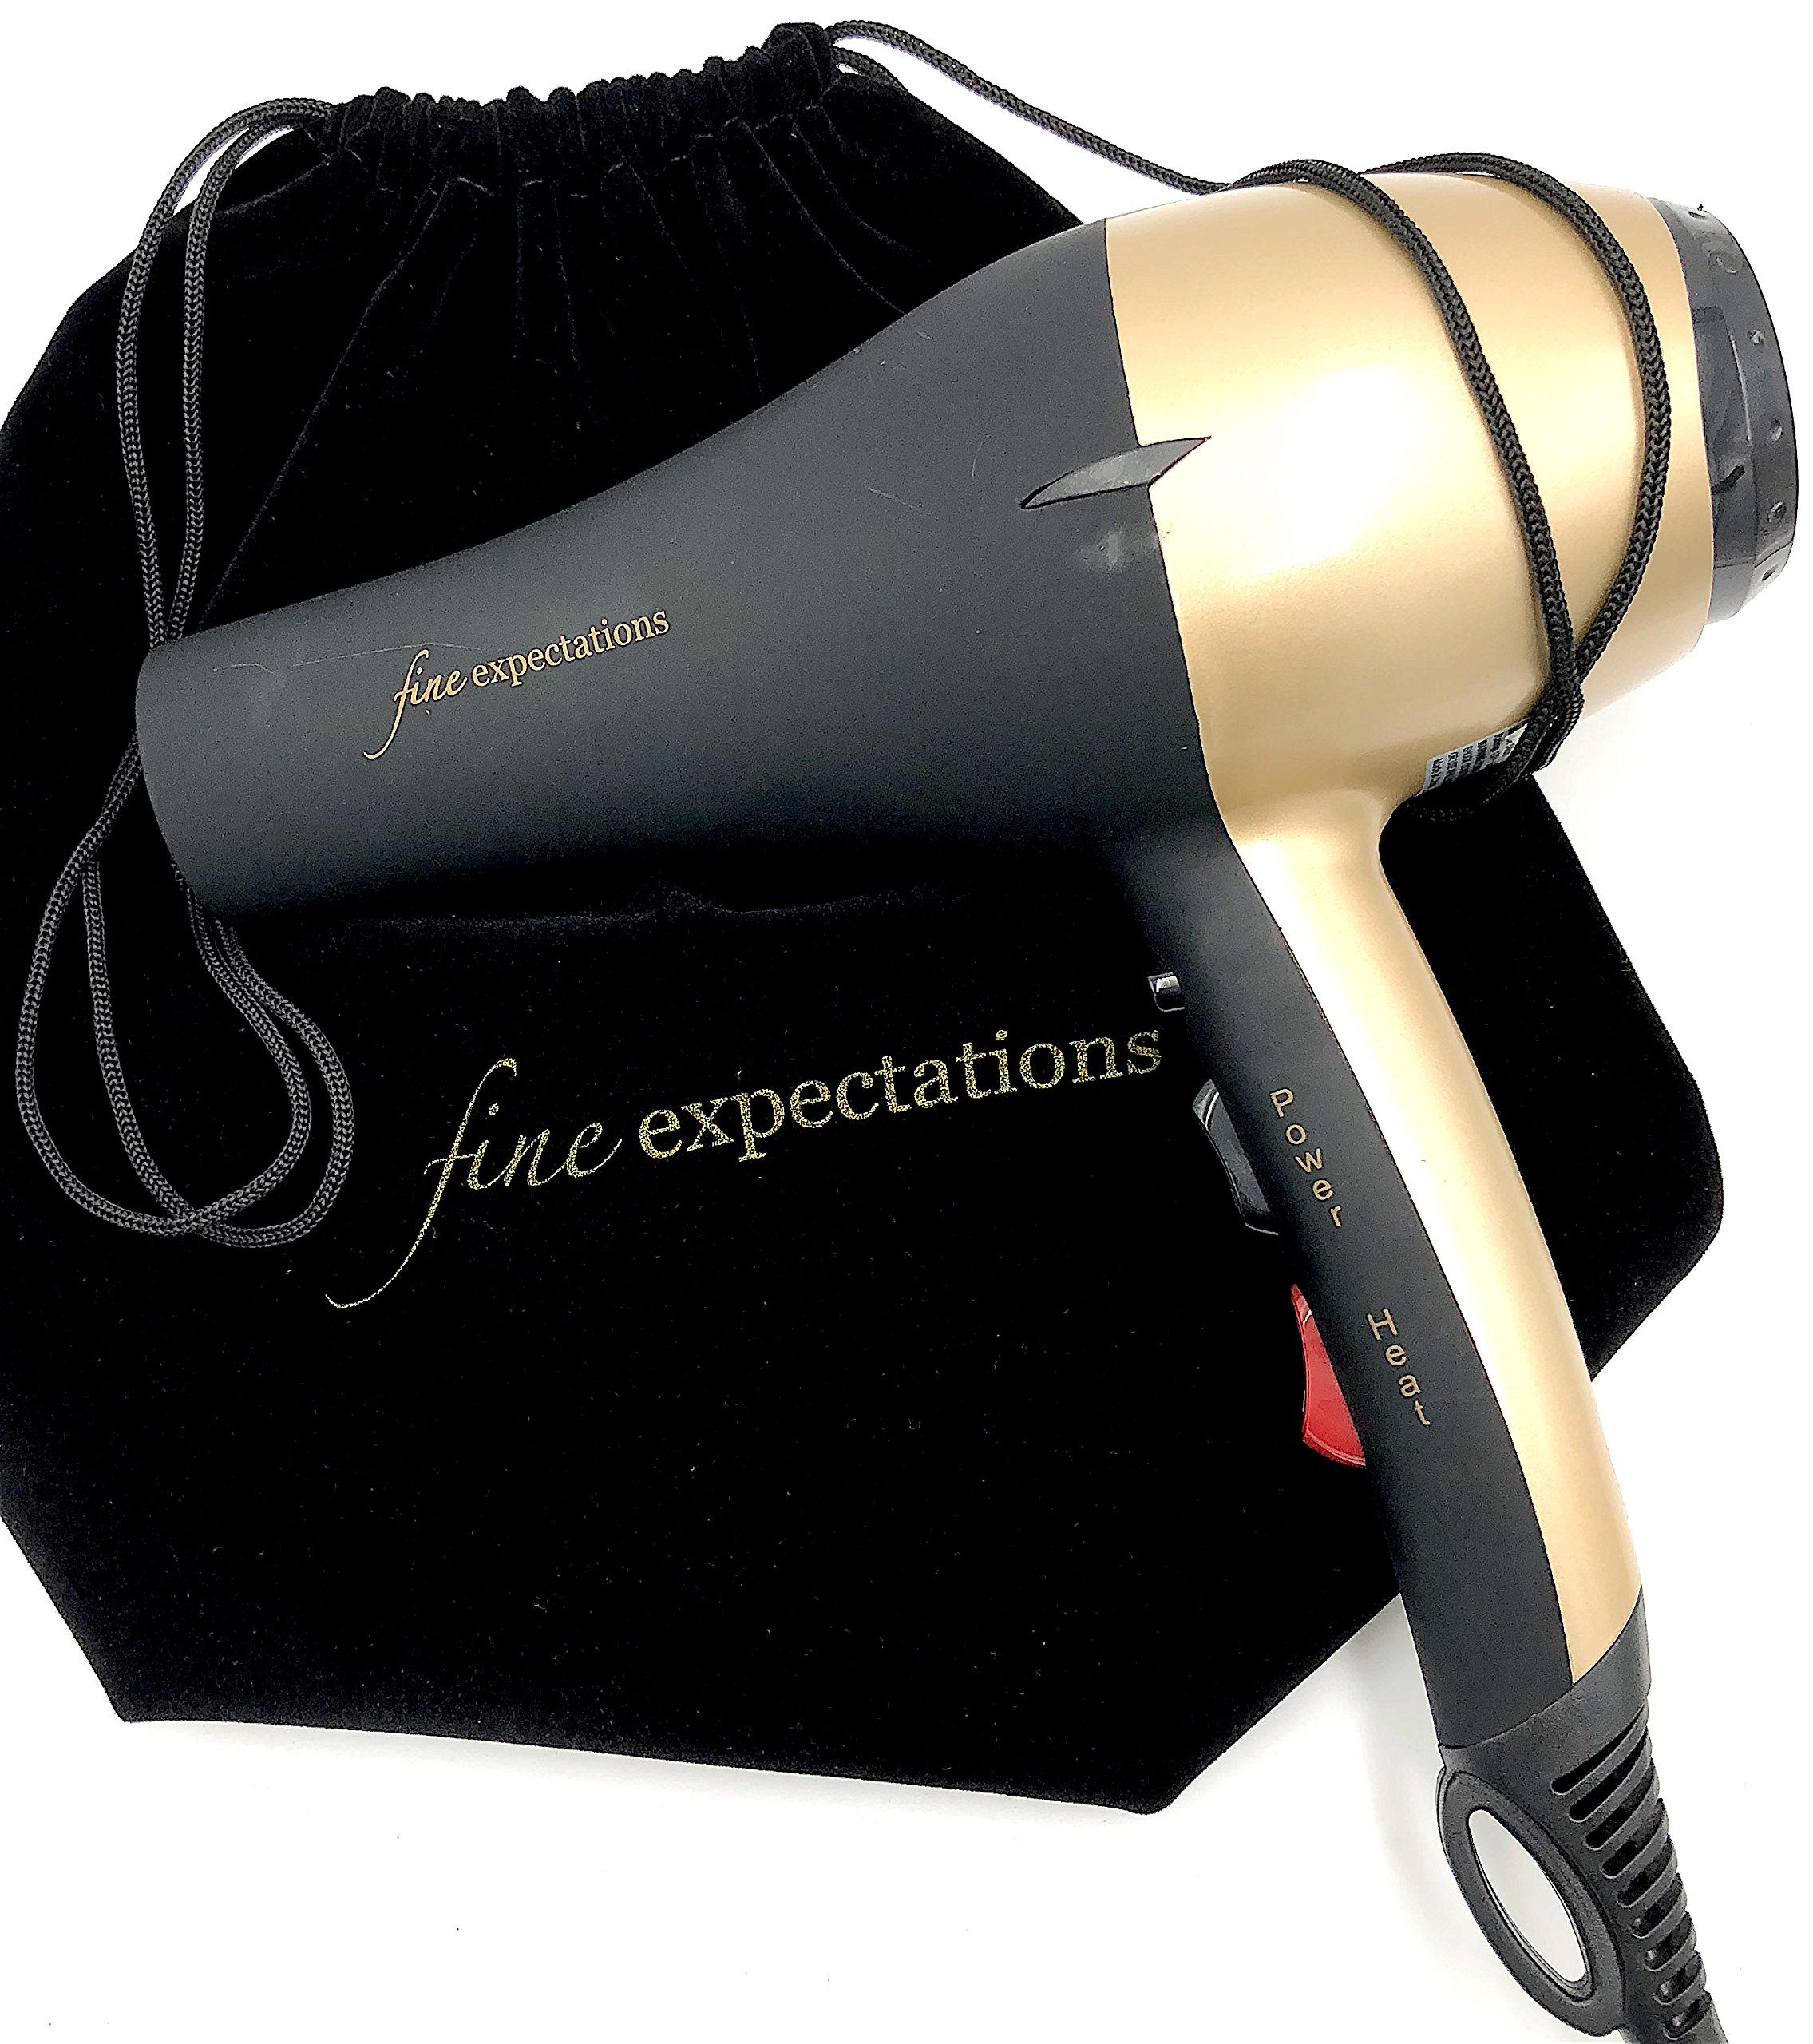 LIMITED TIME SPECIAL! PROFESSIONAL CERAMIC HAIR DRYER - Advanced Infrared and Ionic Blow Dryer with Long-Life Salon A/C Motor, Very Hot, Hot, Cool AND Instant Cool Shot, 1900W 8' Cord, Velvet Pouch by Fine Expectations (Image #4)